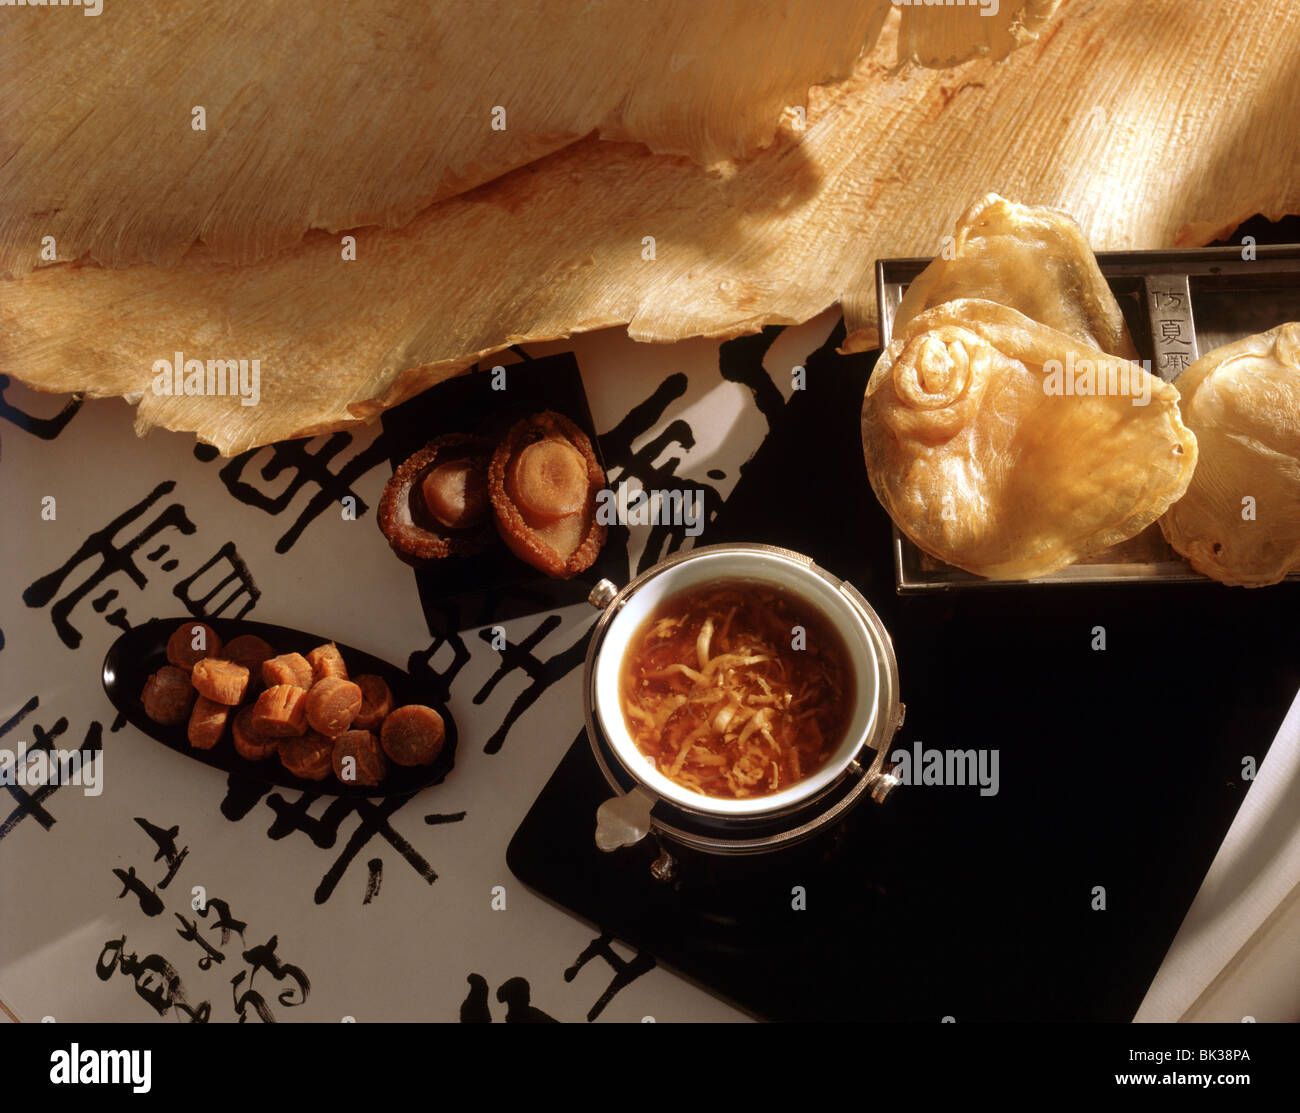 Shark fin soup and dry fins and abalone, China, Asia - Stock Image